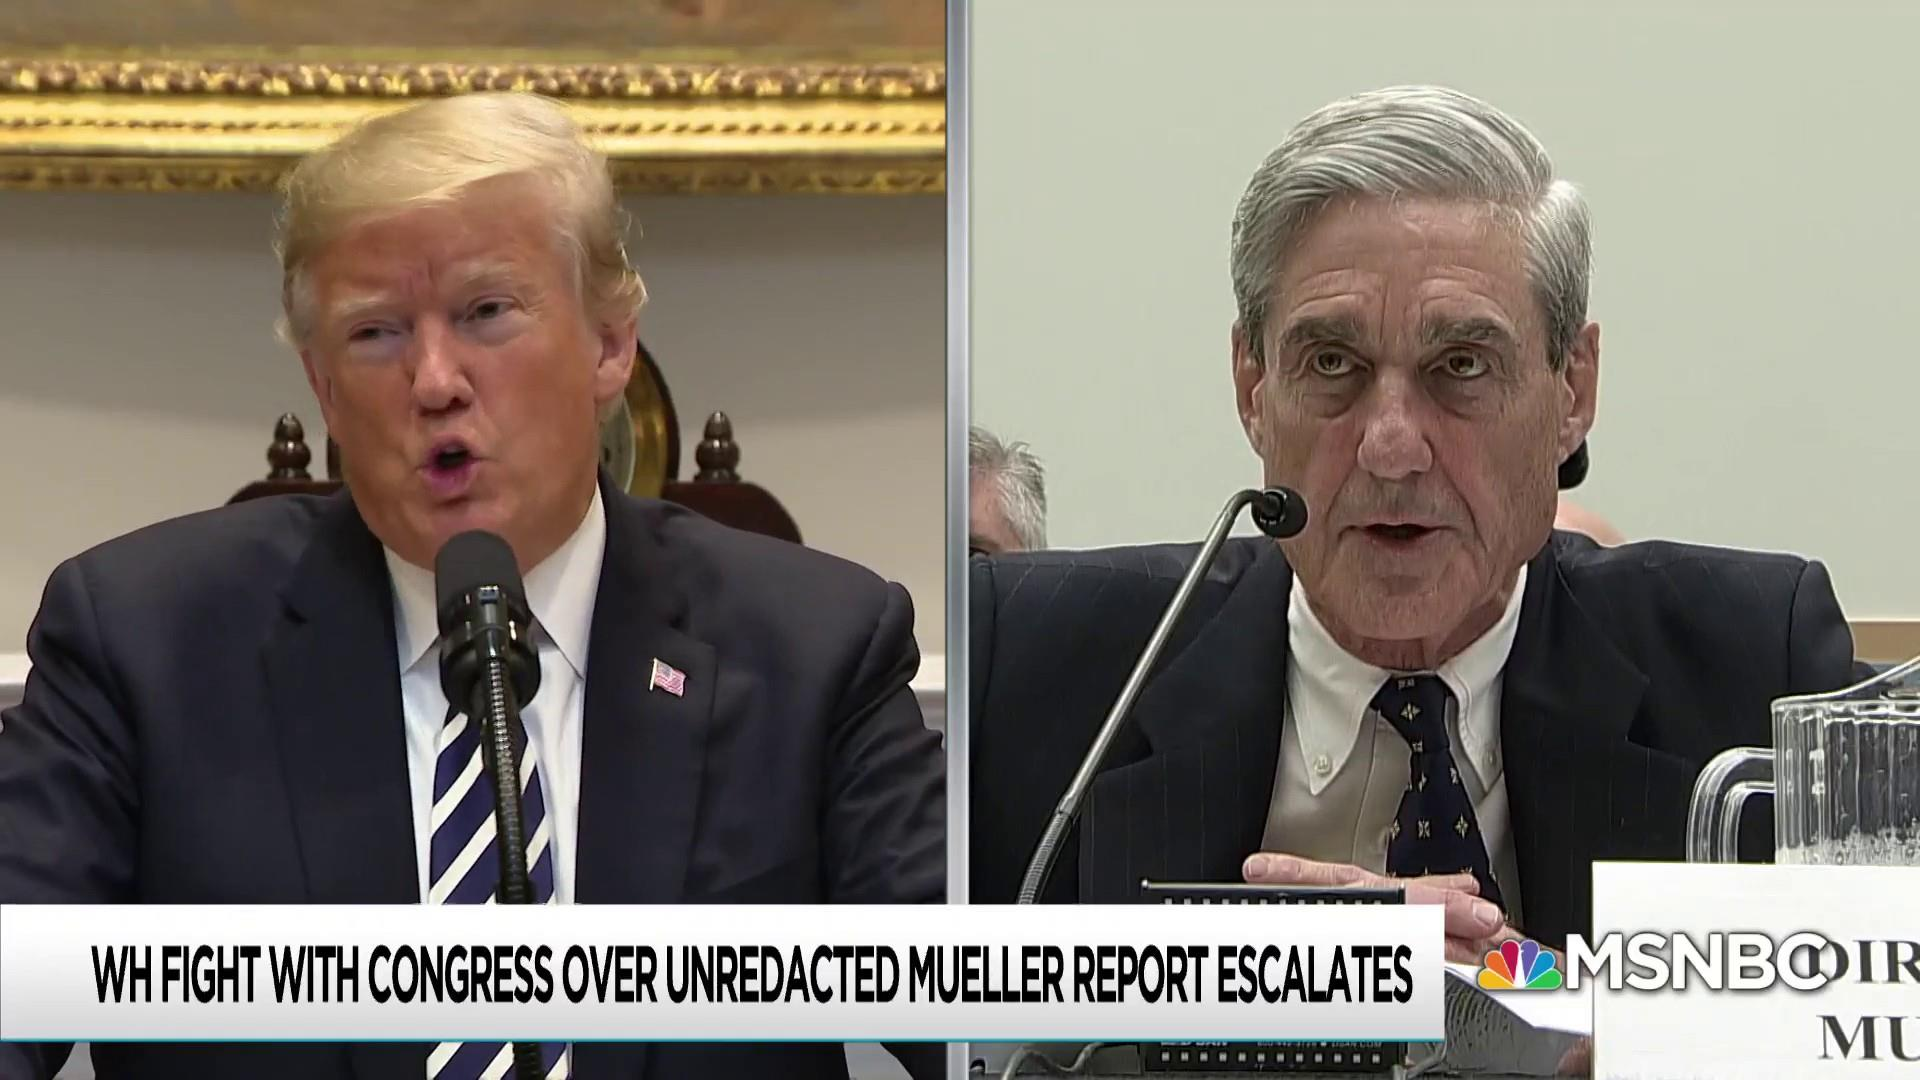 Trump versus the Mueller investigation: one fight on many fronts